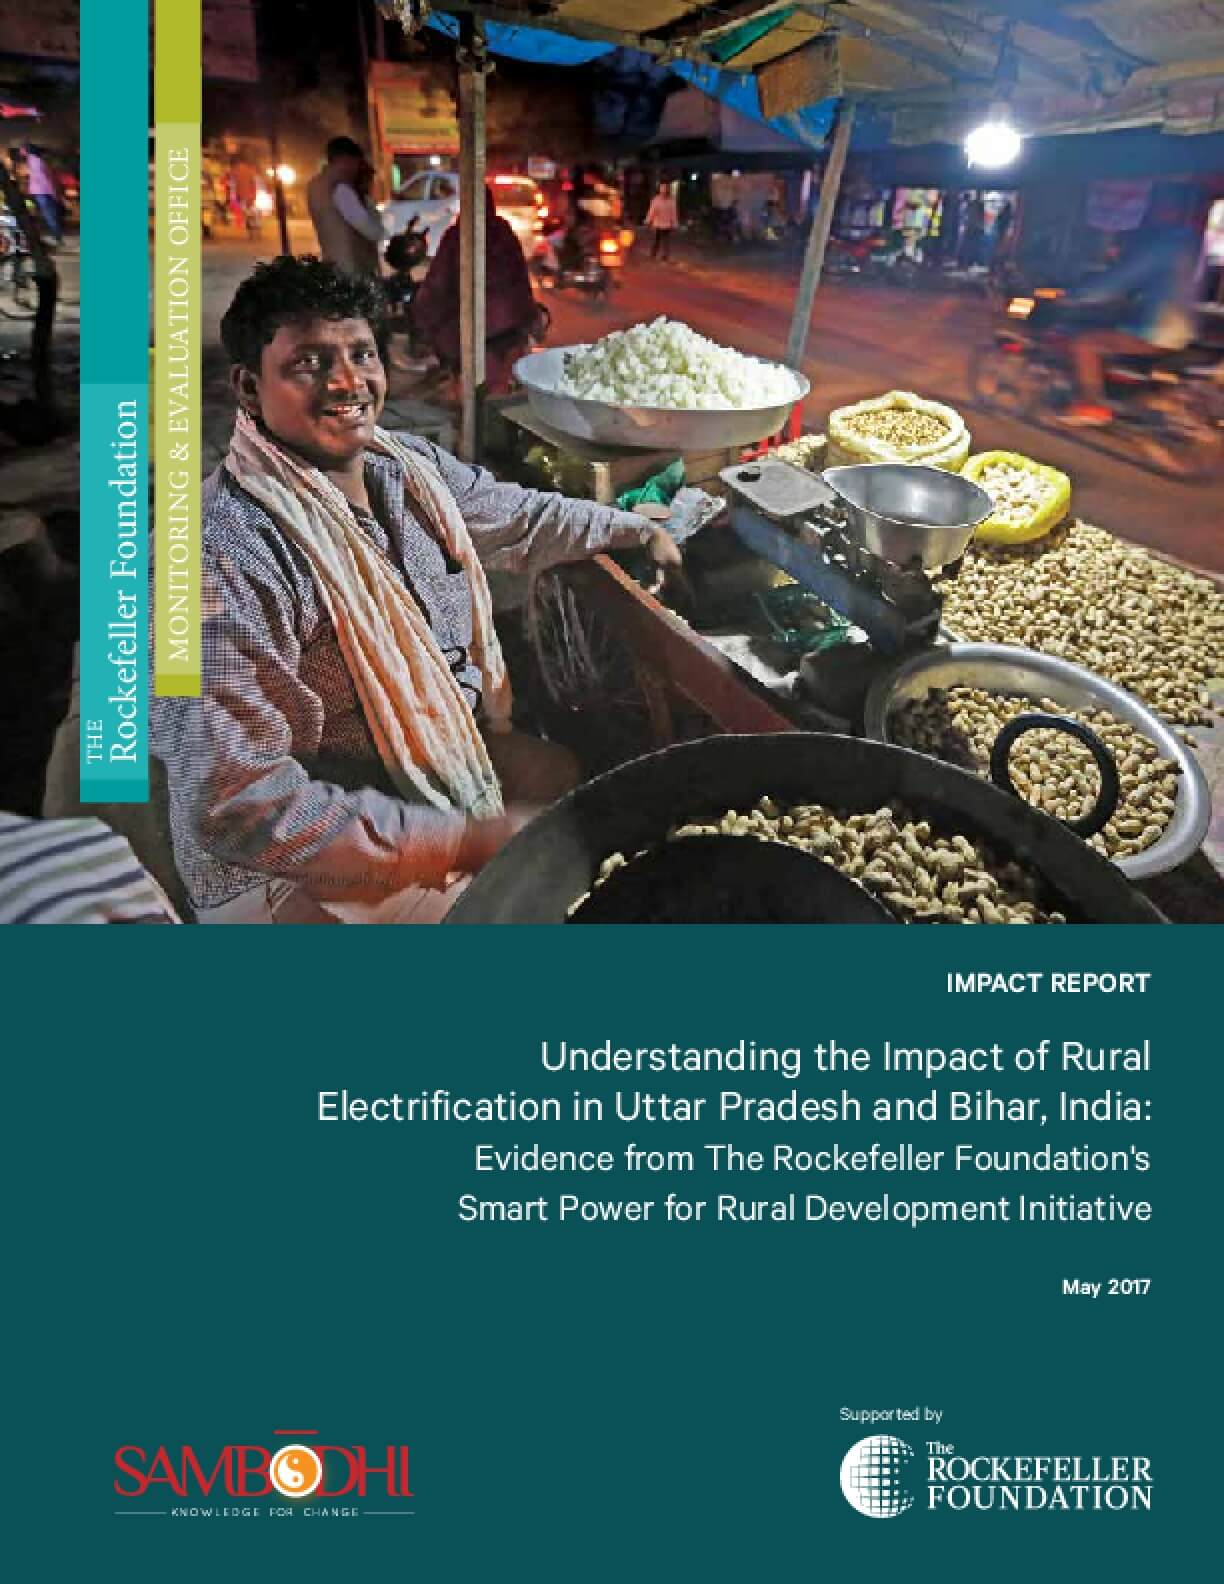 Understanding the Impact of Rural Electrification in Uttar Pradesh and Bihar, India: Evidence from The Rockefeller Foundation's Smart Power for Rural Development Initiative